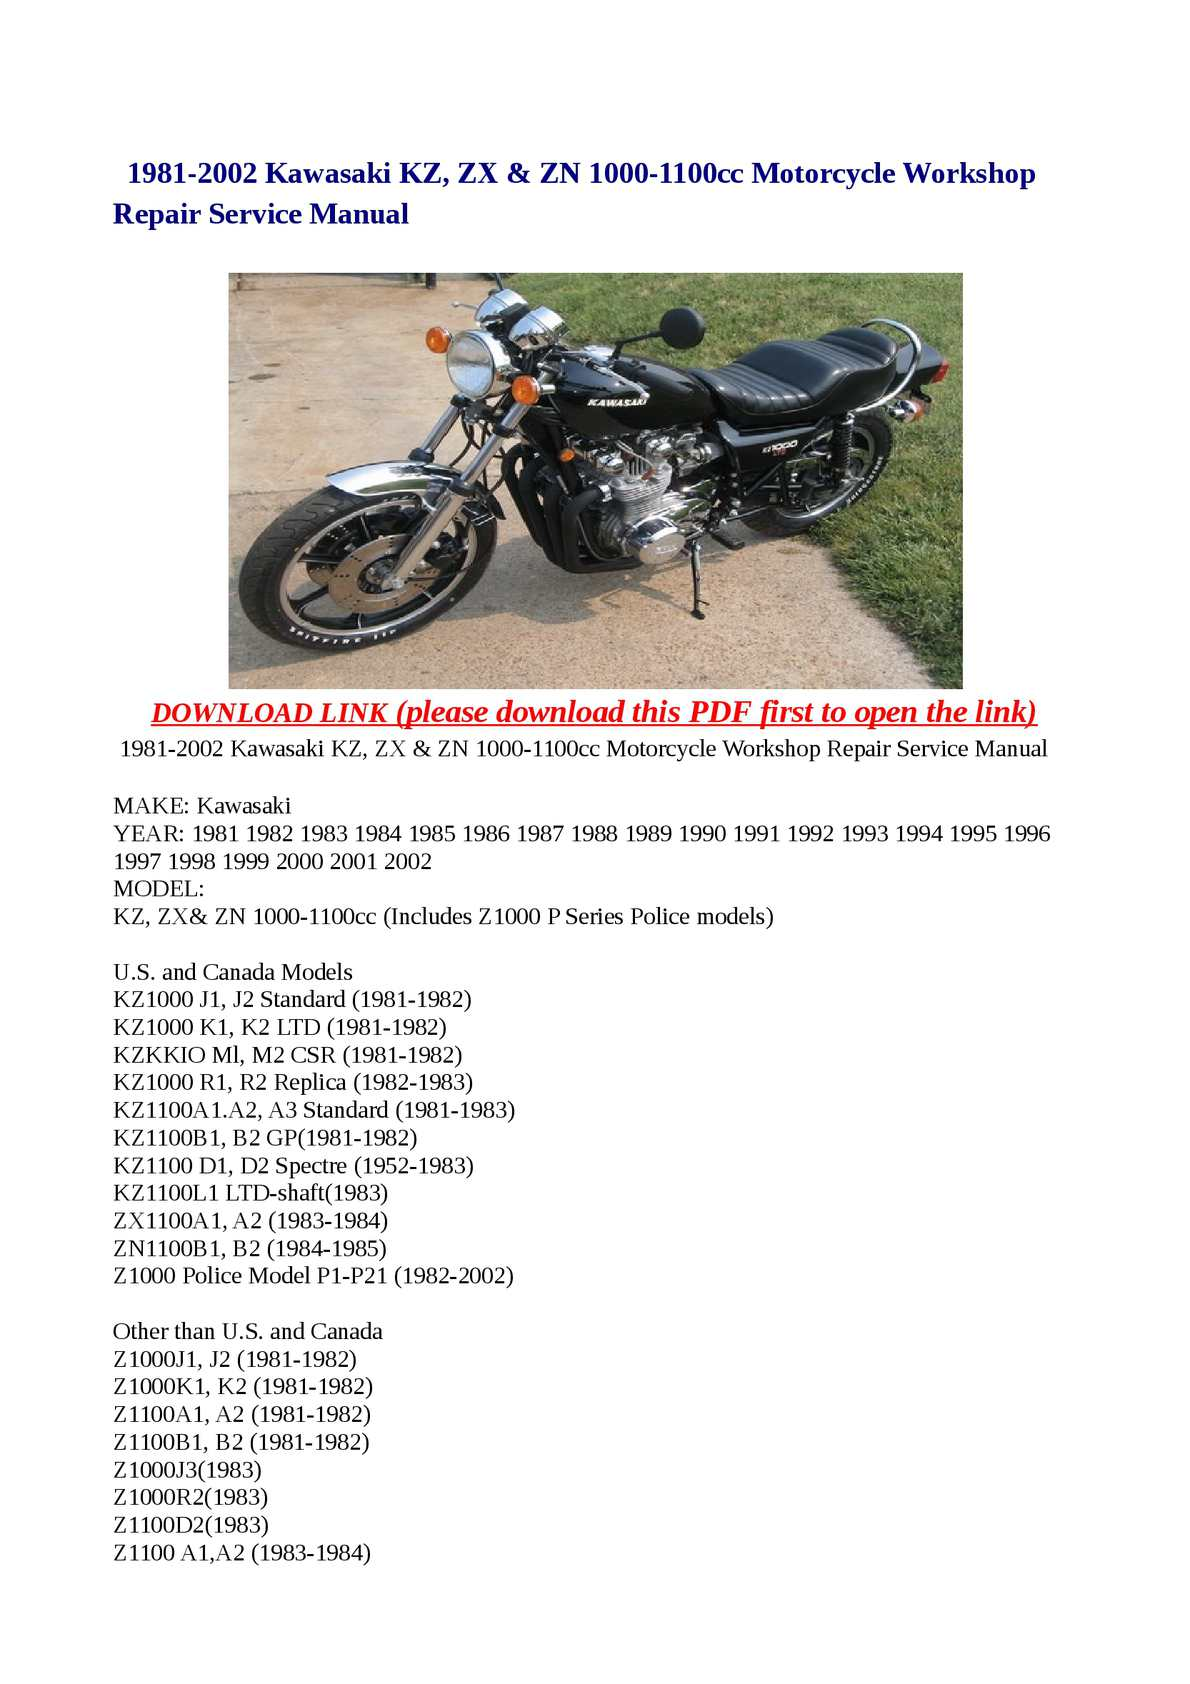 Xc 8263 Motorcycle Wiring Diagrams Also Kawasaki Kz1000 Ltd Wiring Diagram Free Diagram